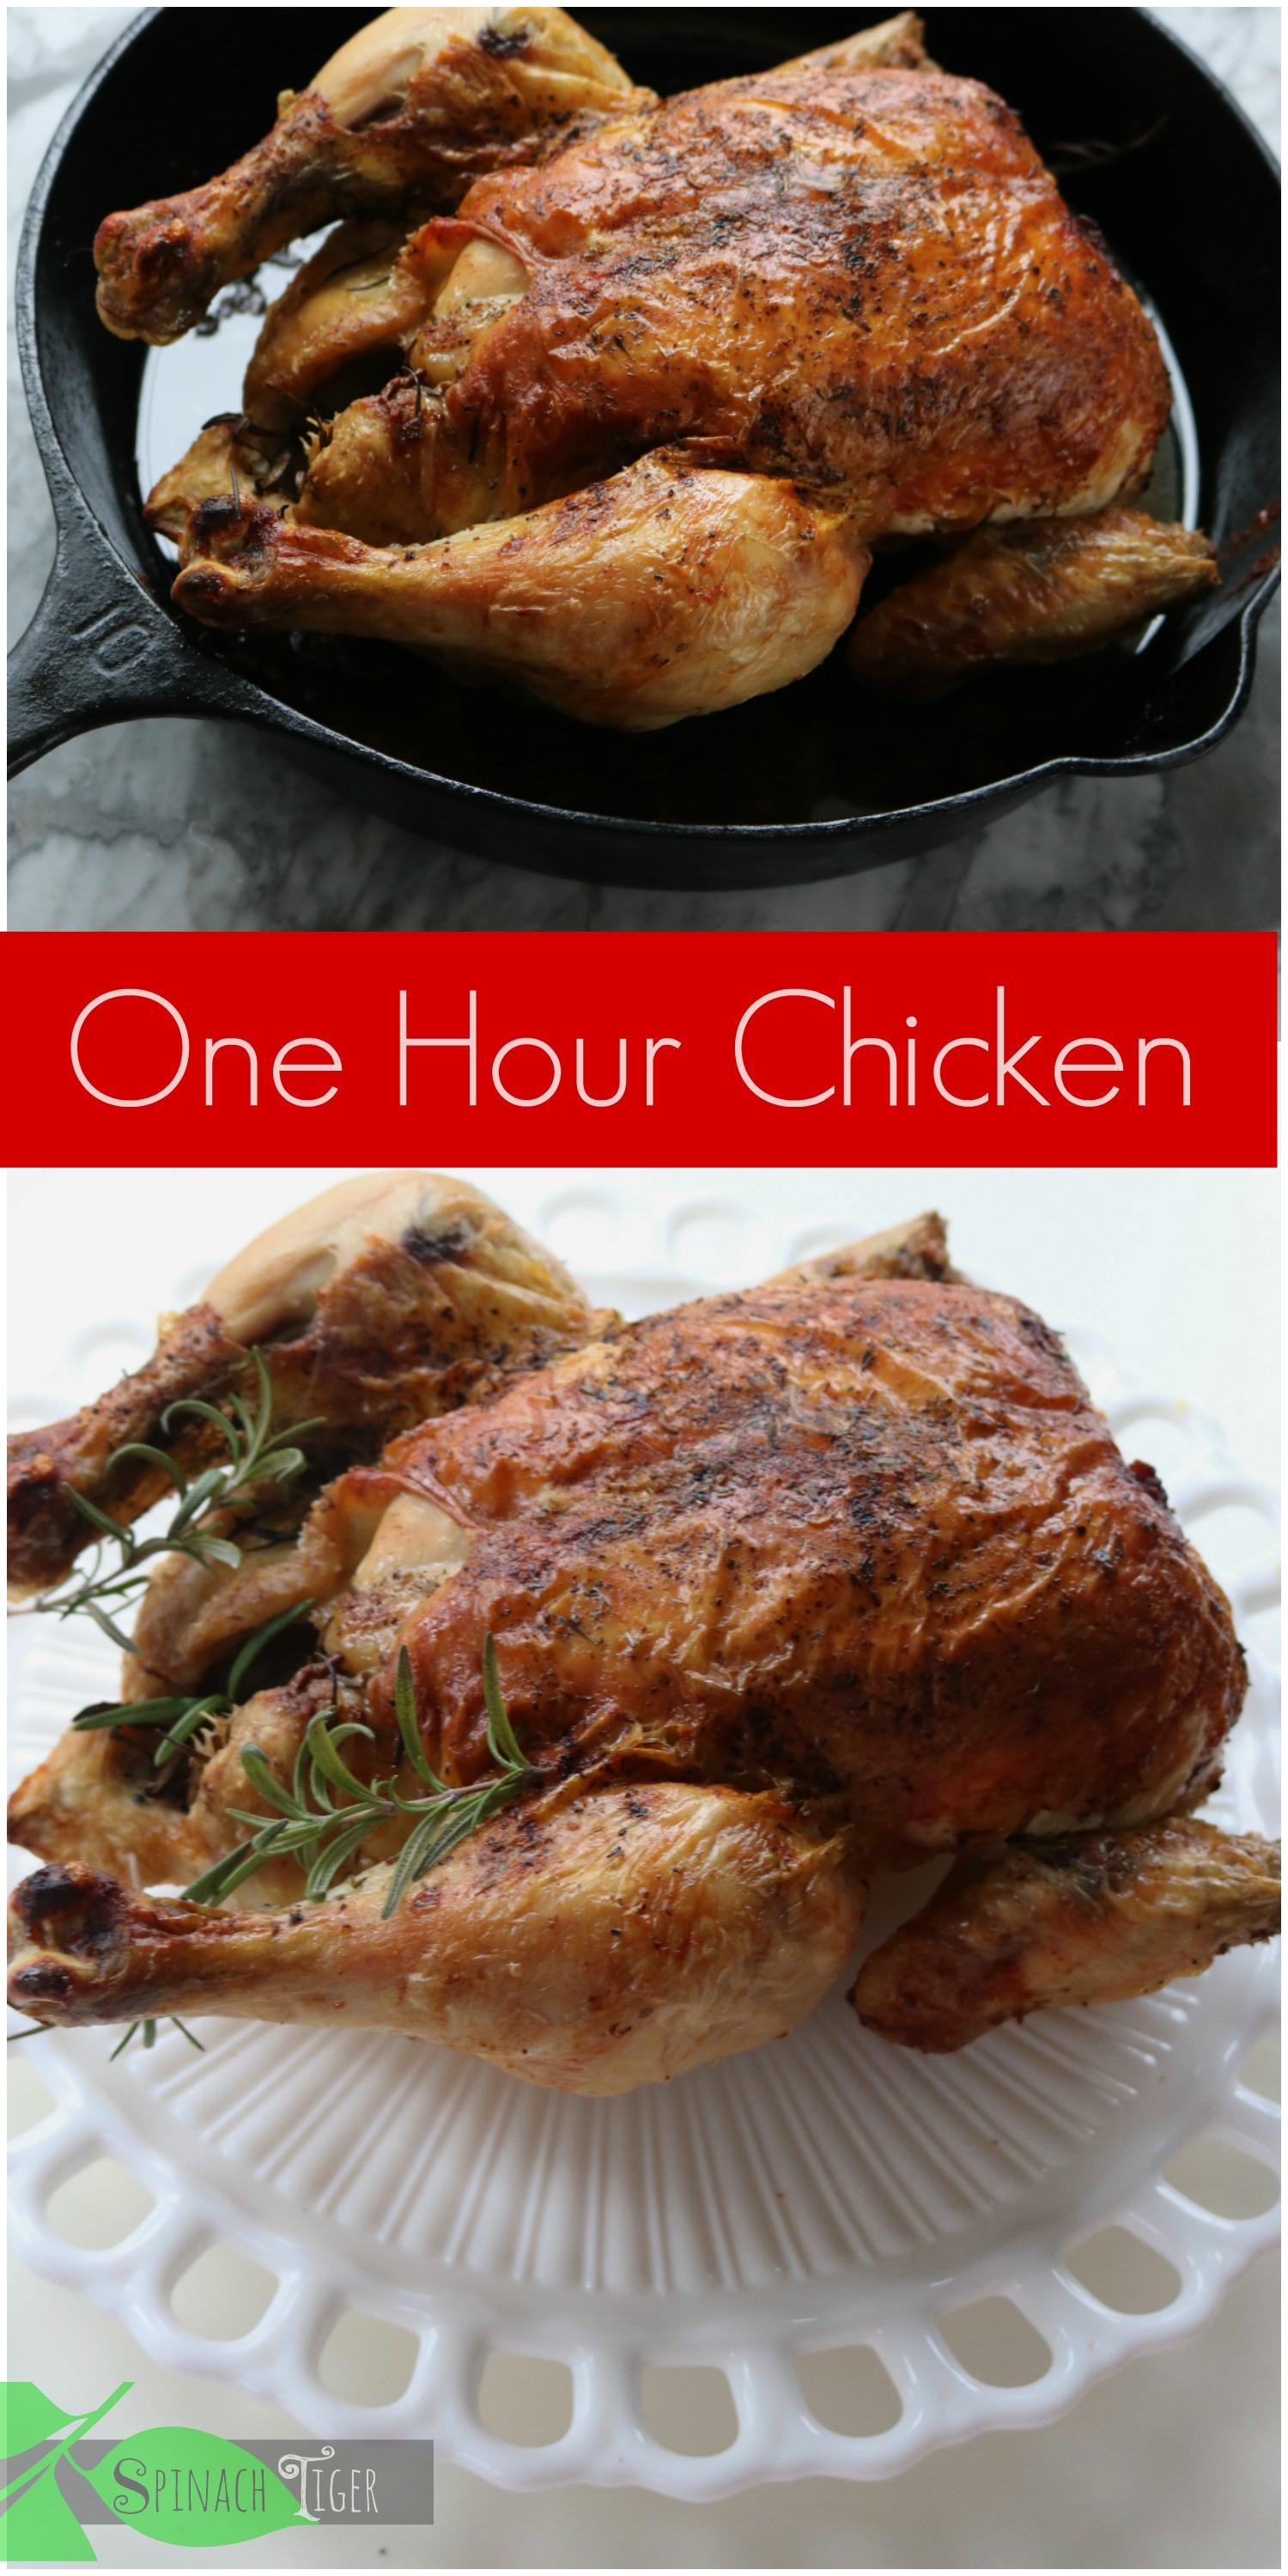 Italian Roast Chicken Recipe and How to Roast Chicken in the Oven from Spinach Tiger